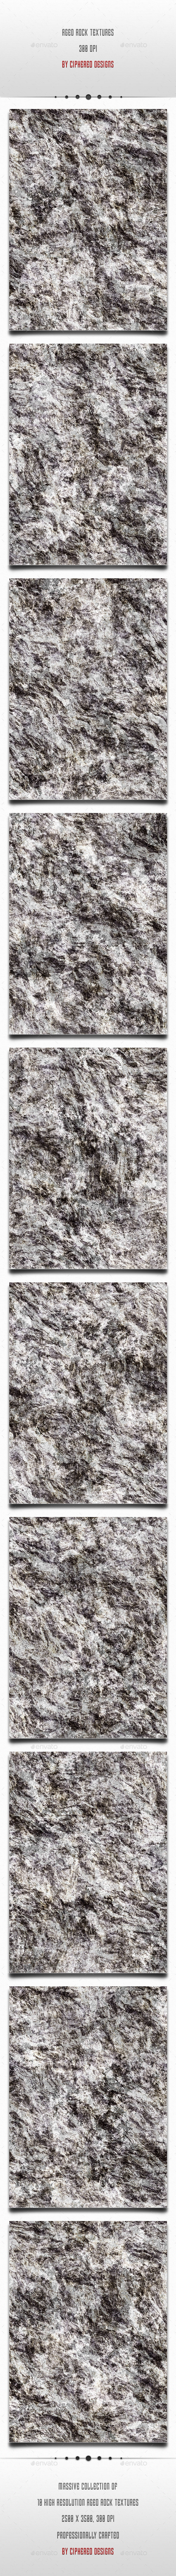 Aged Rock Textures - Stone Textures